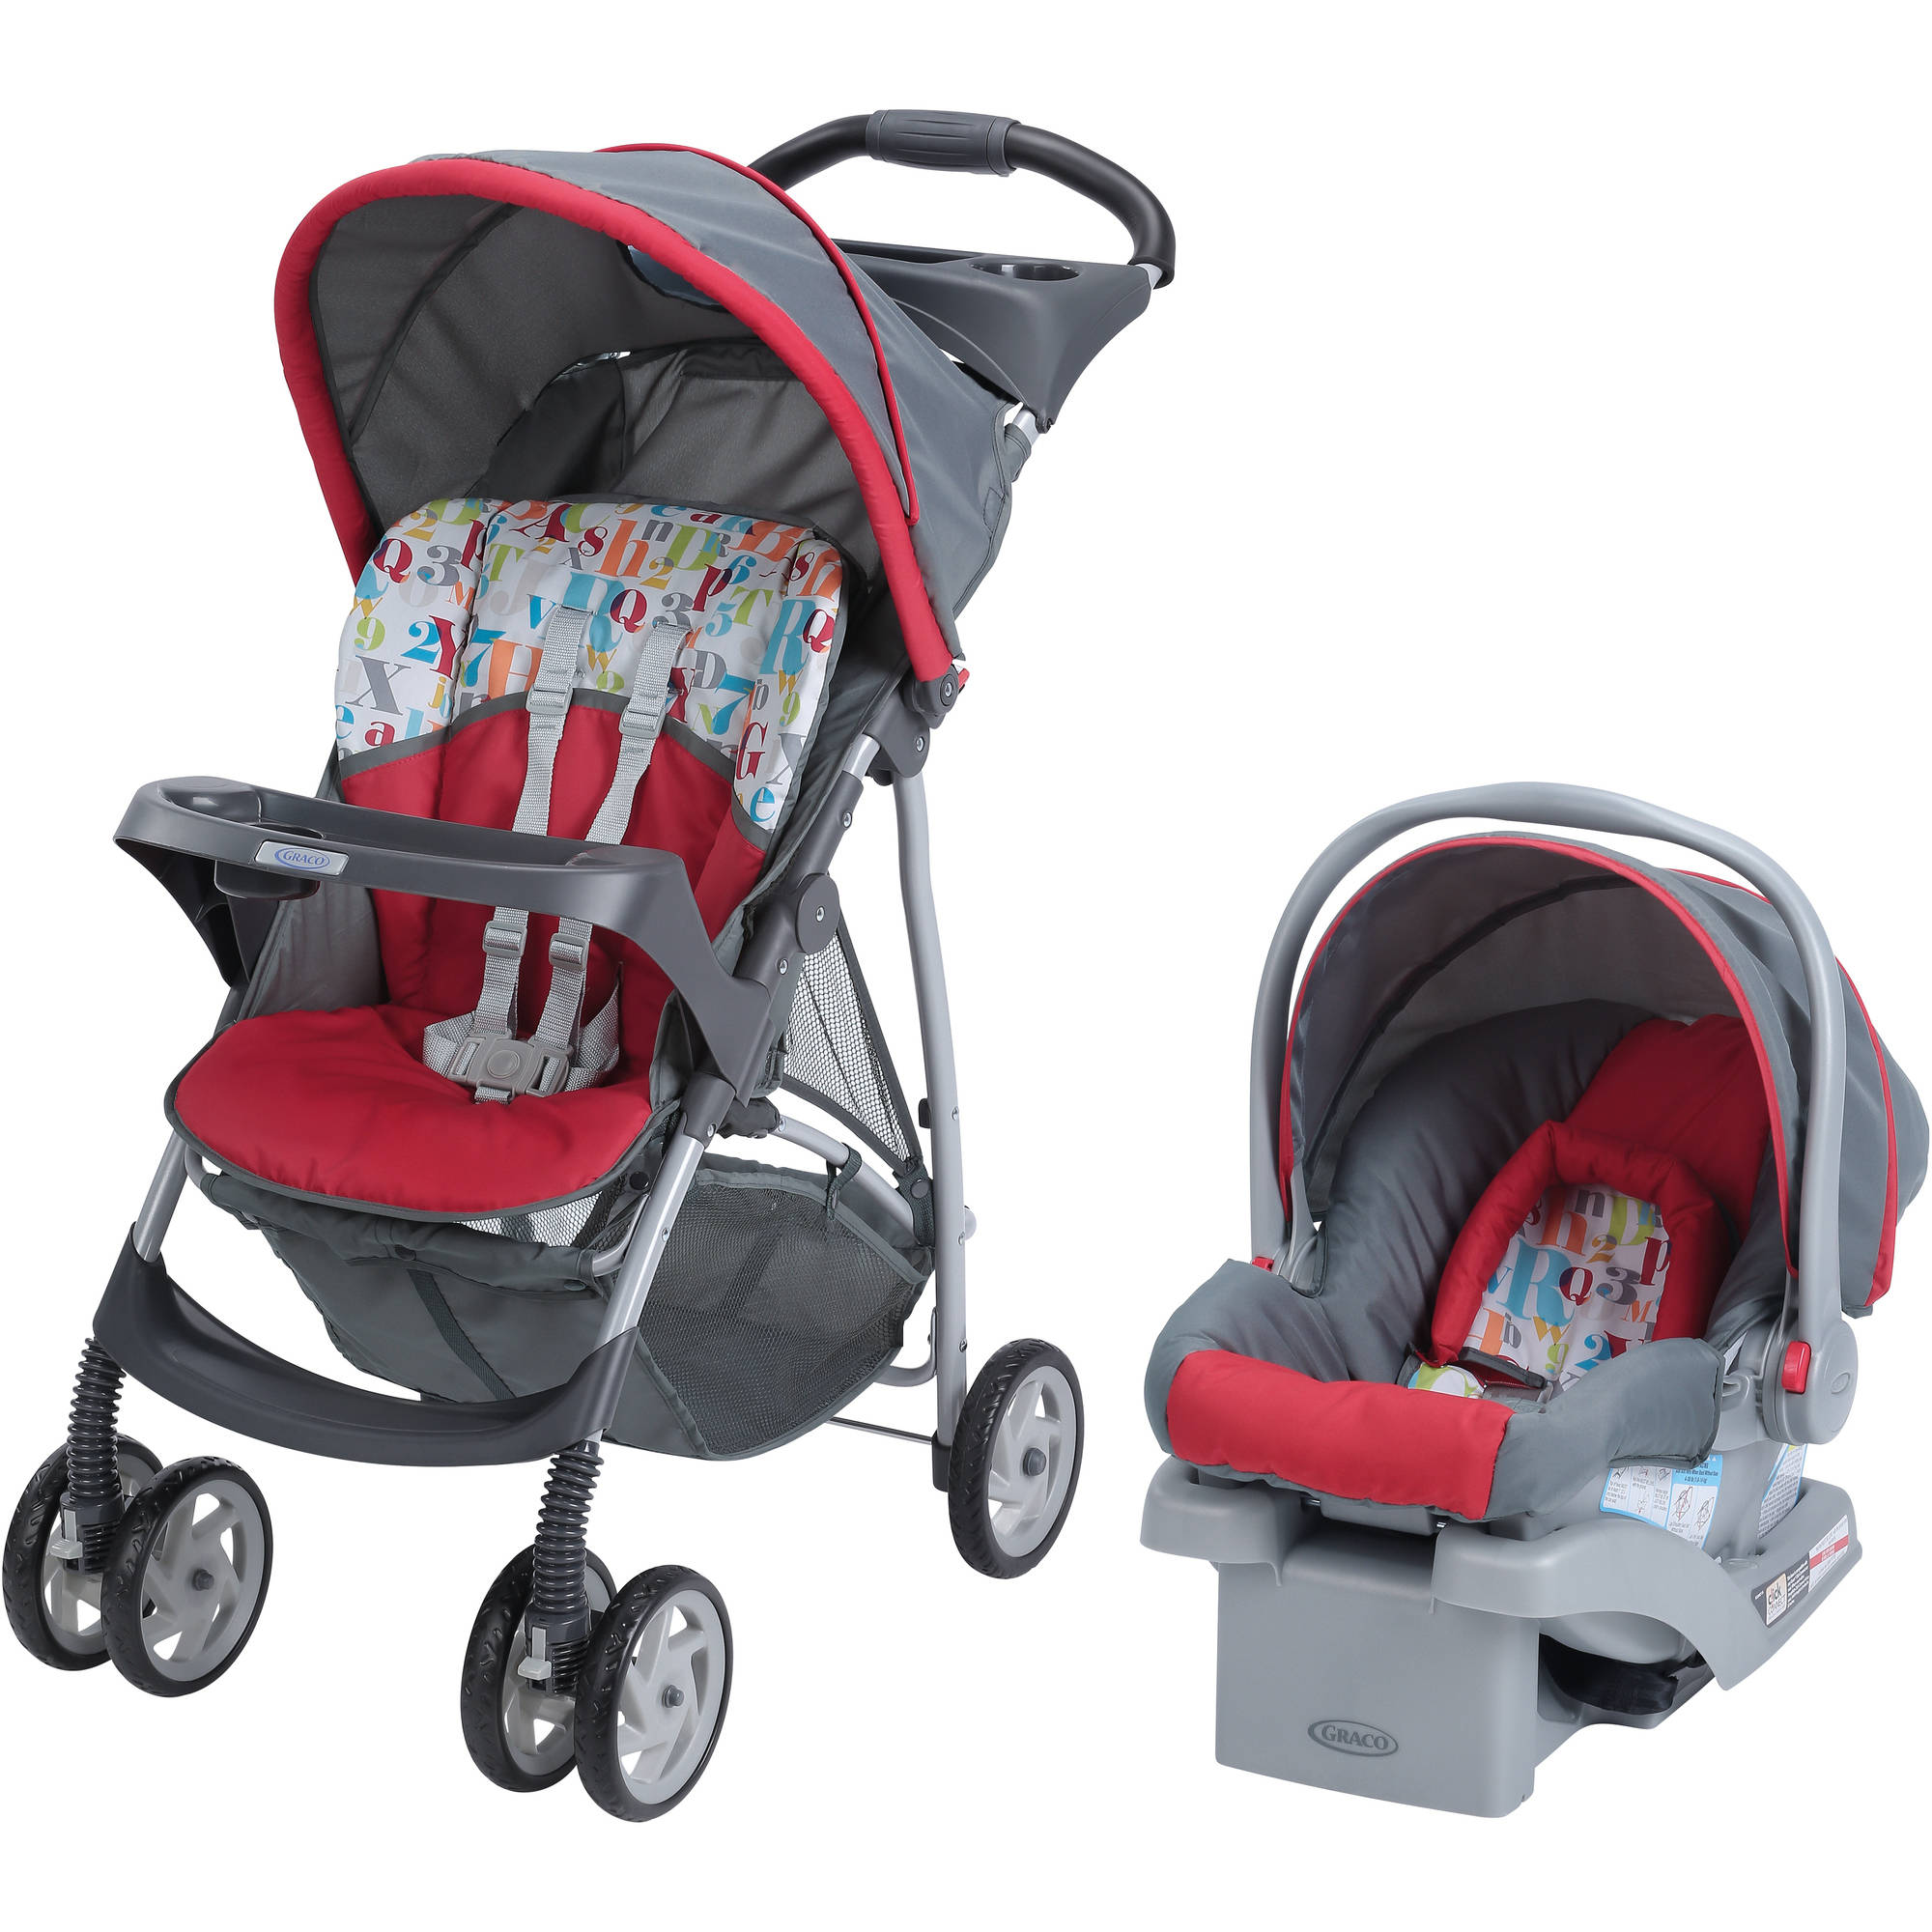 baby chair swinging model no ts bs 16 swing thailand graco literider click connect travel system with snugride 22 infant car seat signal walmart com